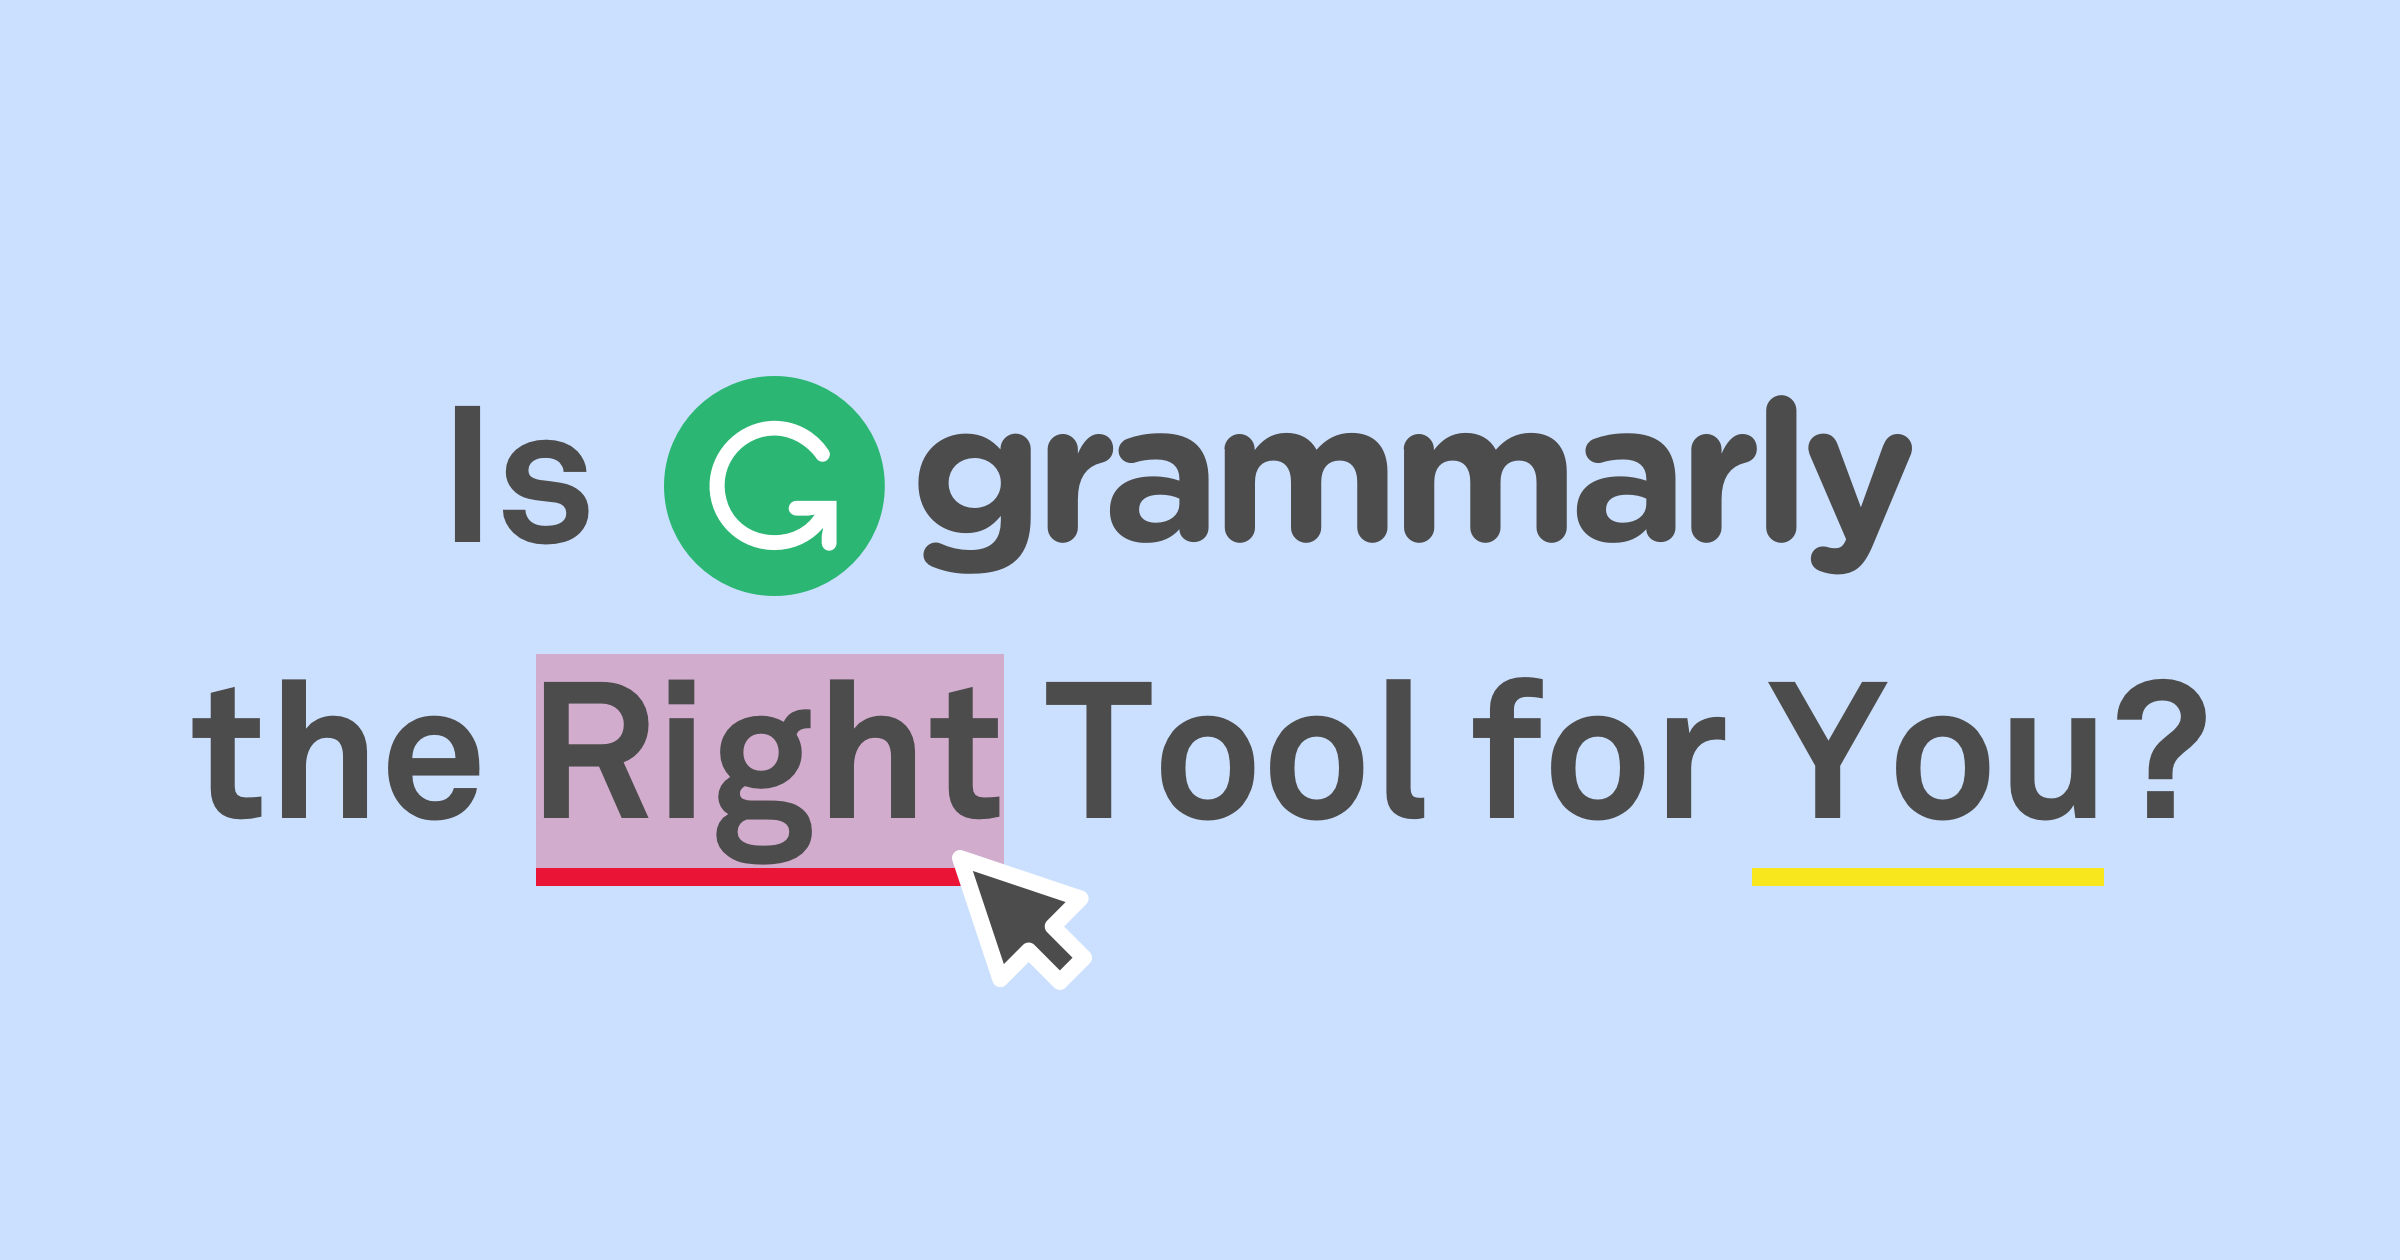 For Under 300 Grammarly